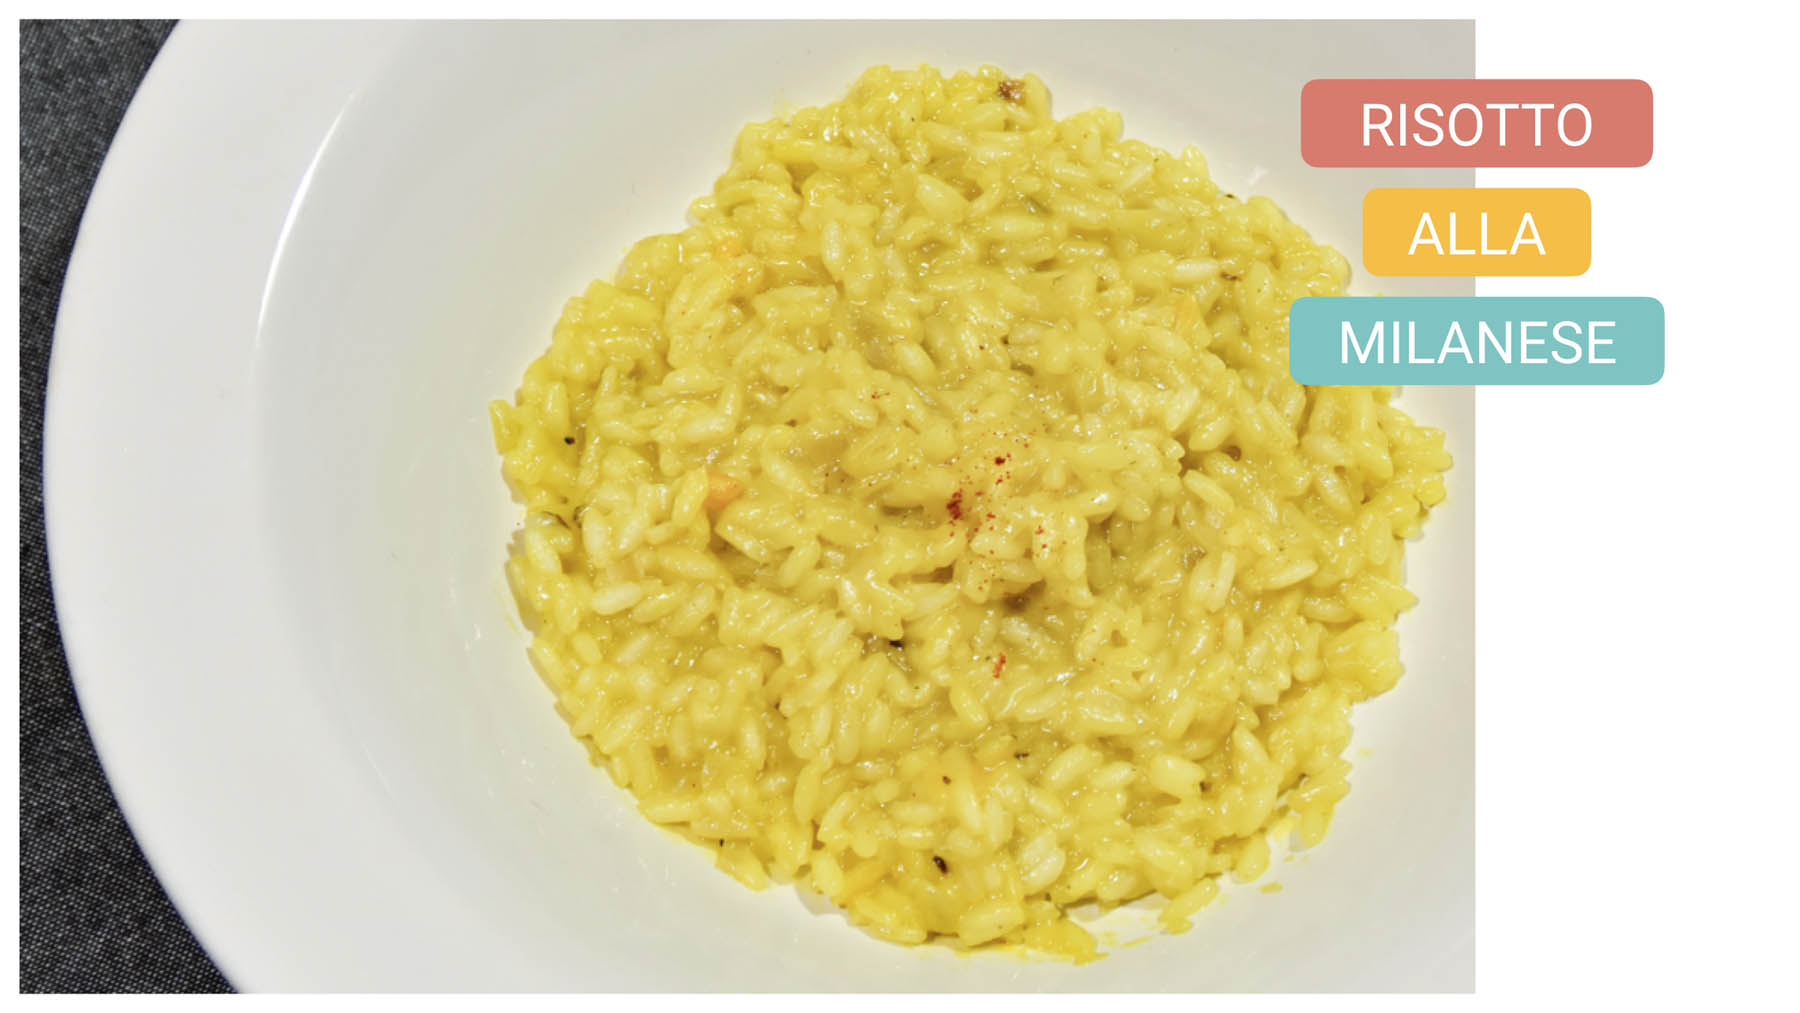 Typical food in Milan - milano bike tour - risotto